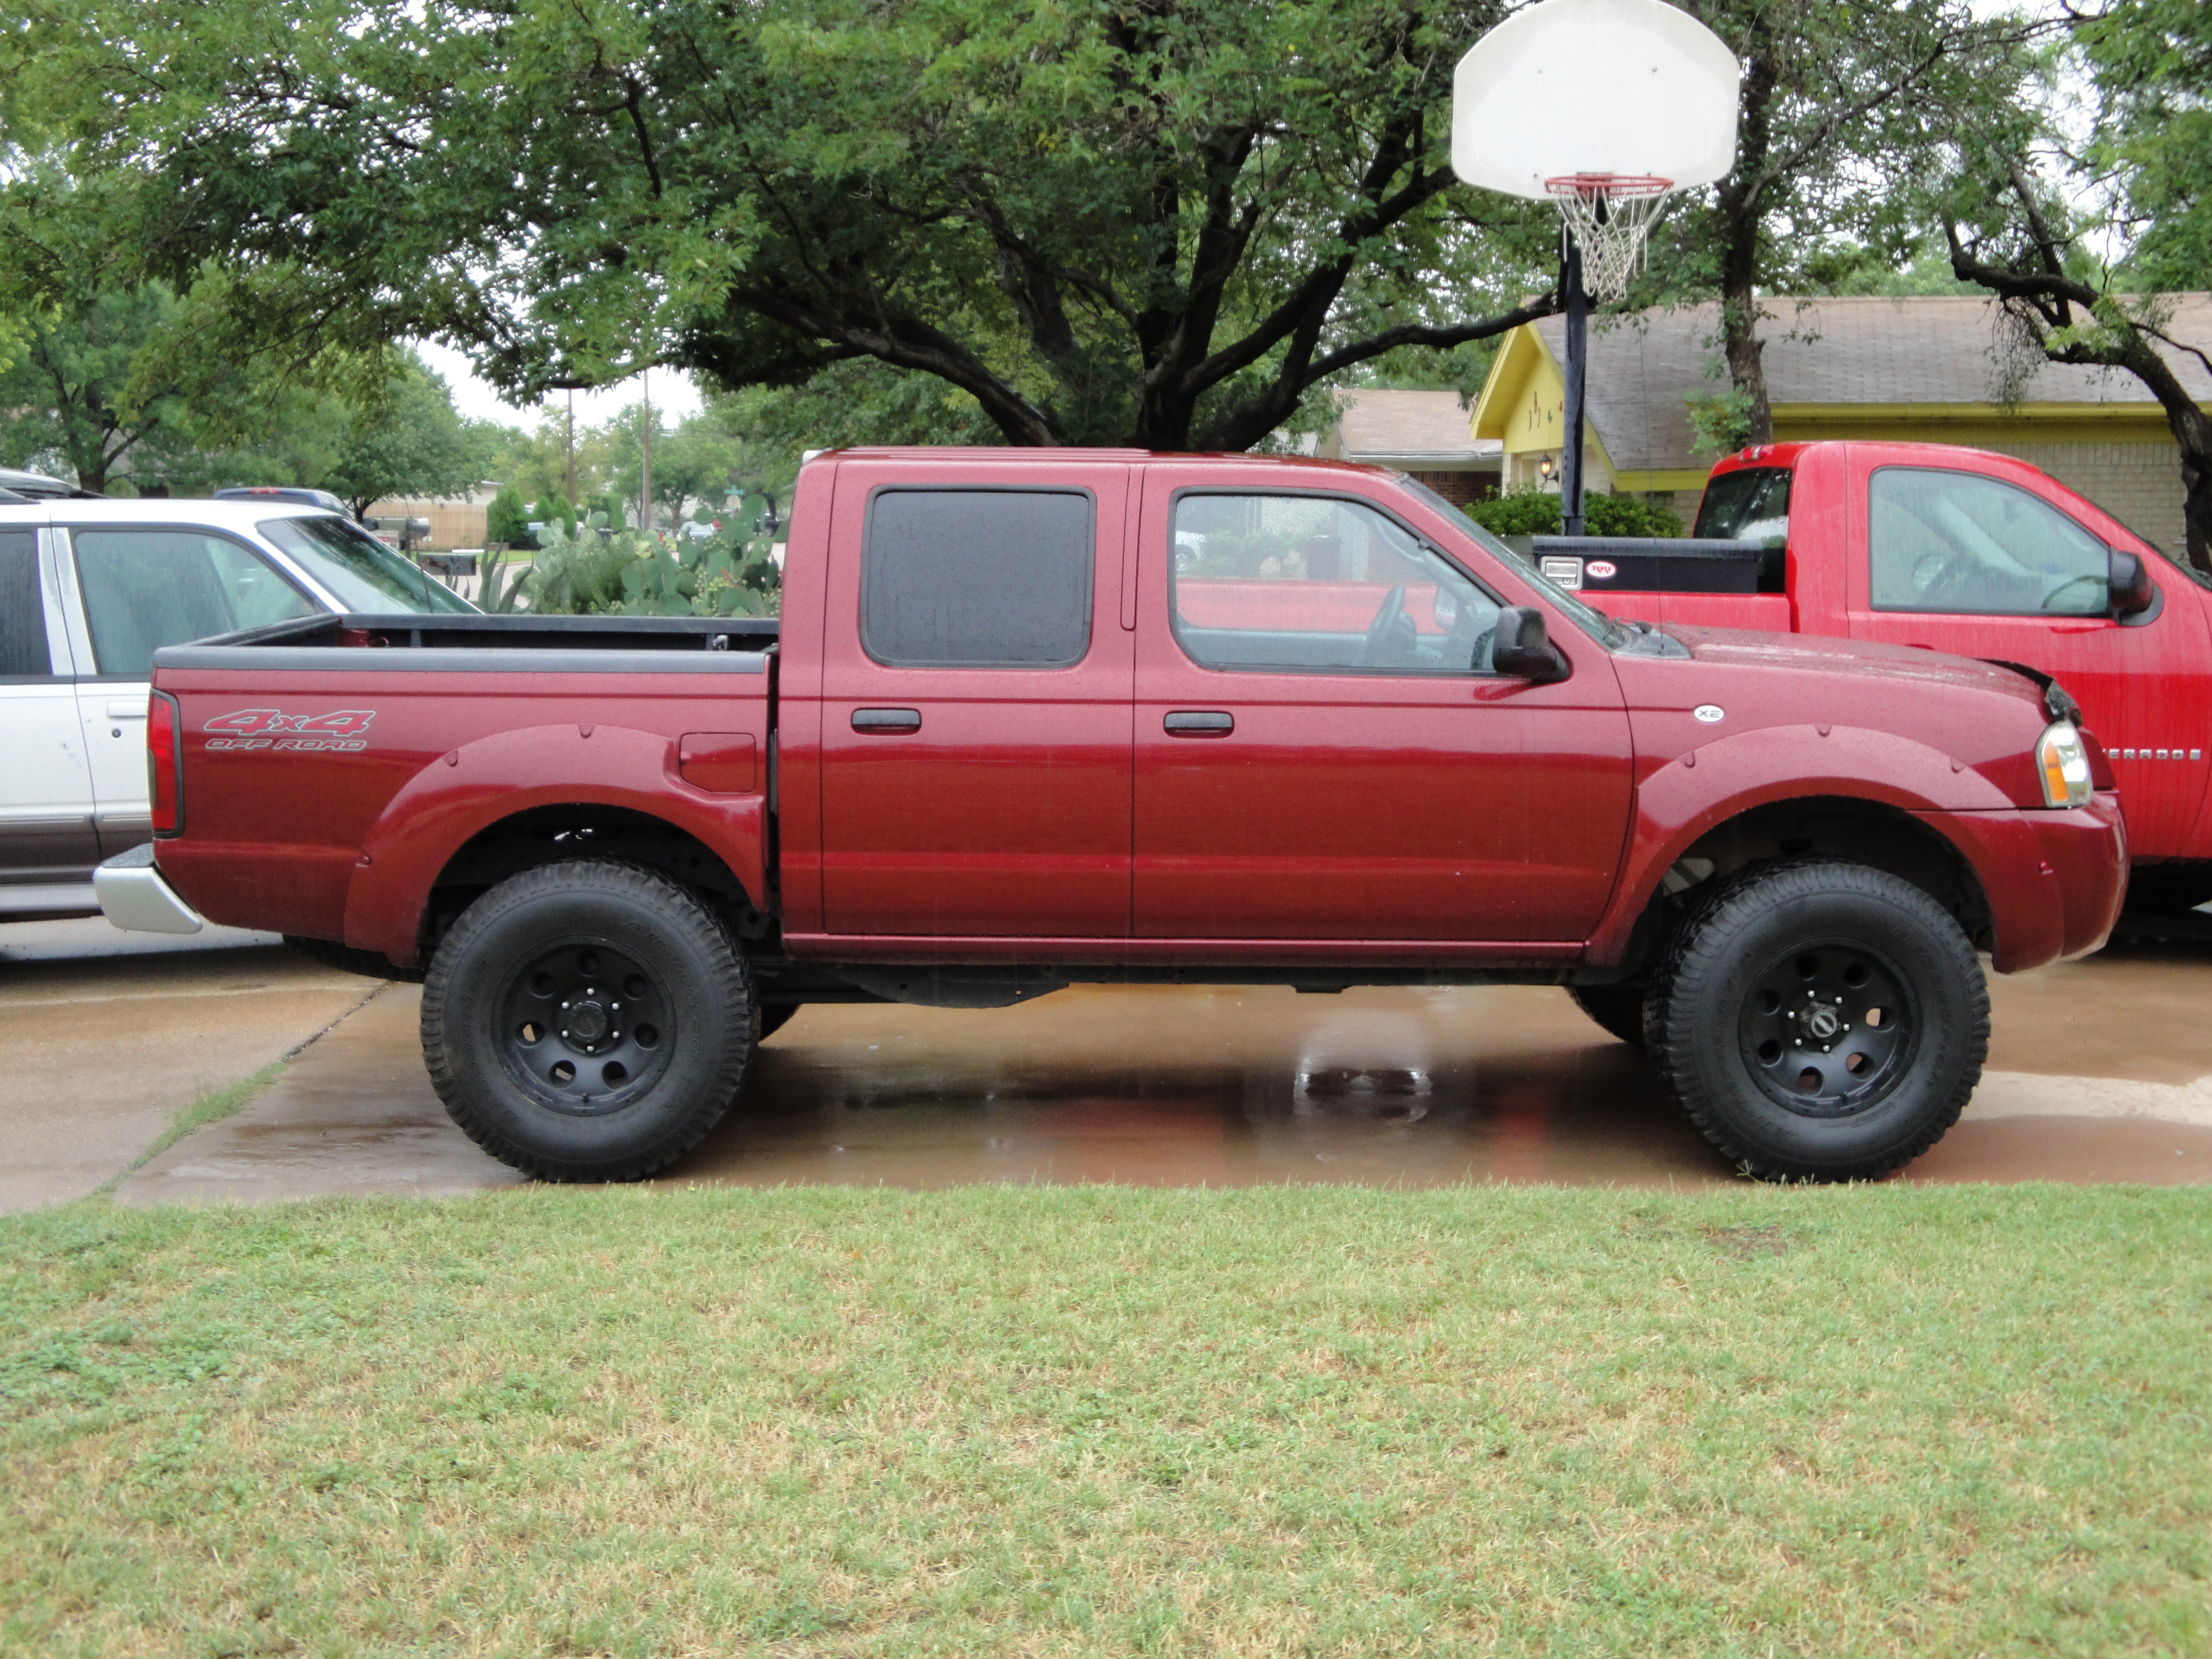 2000 nissan frontier crew cab red gallery hd cars wallpaper 2004 nissan frontier information and photos zombiedrive 2004 nissan frontier 24 nissan frontier 24 vanachro gallery vanachro Gallery